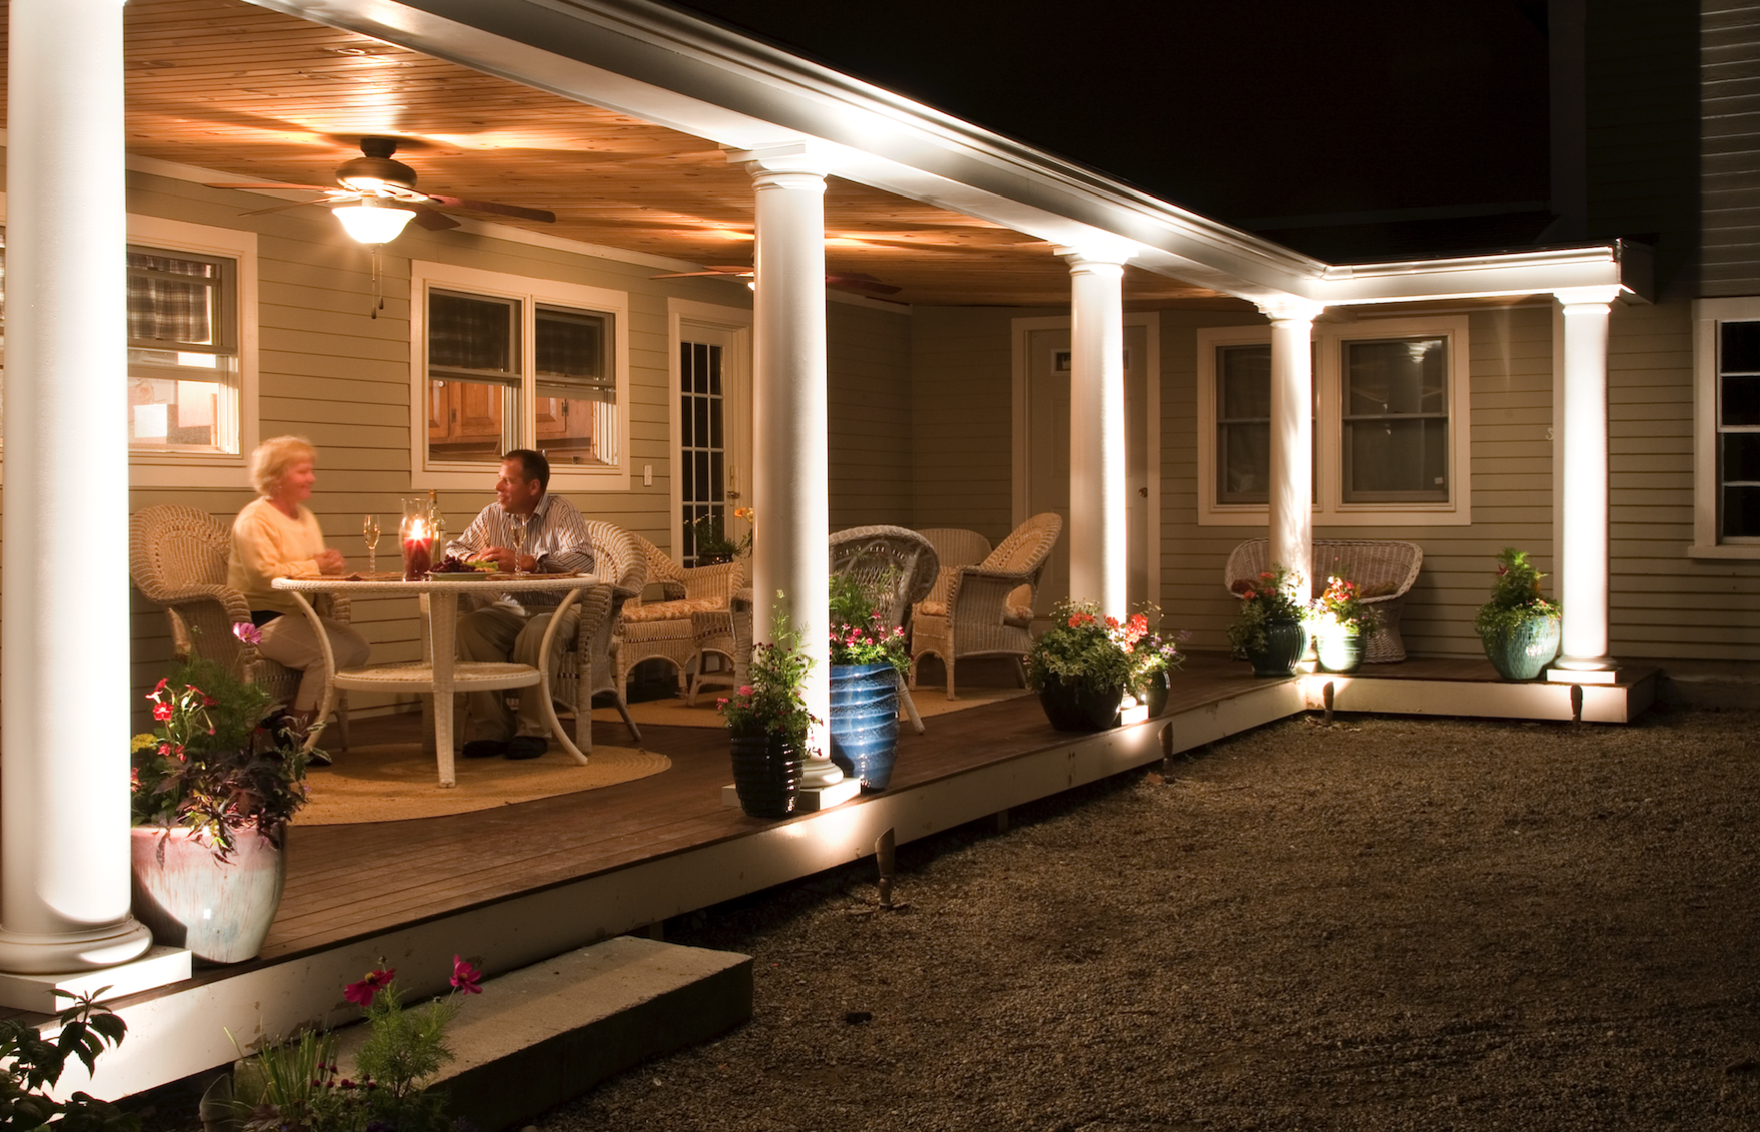 Poughkeepsie, NY landscaping professionals, Harmony Hill, design and install low-voltage outdoor lighting systems for Dutchess County residents. Photo: Cast Lighting.